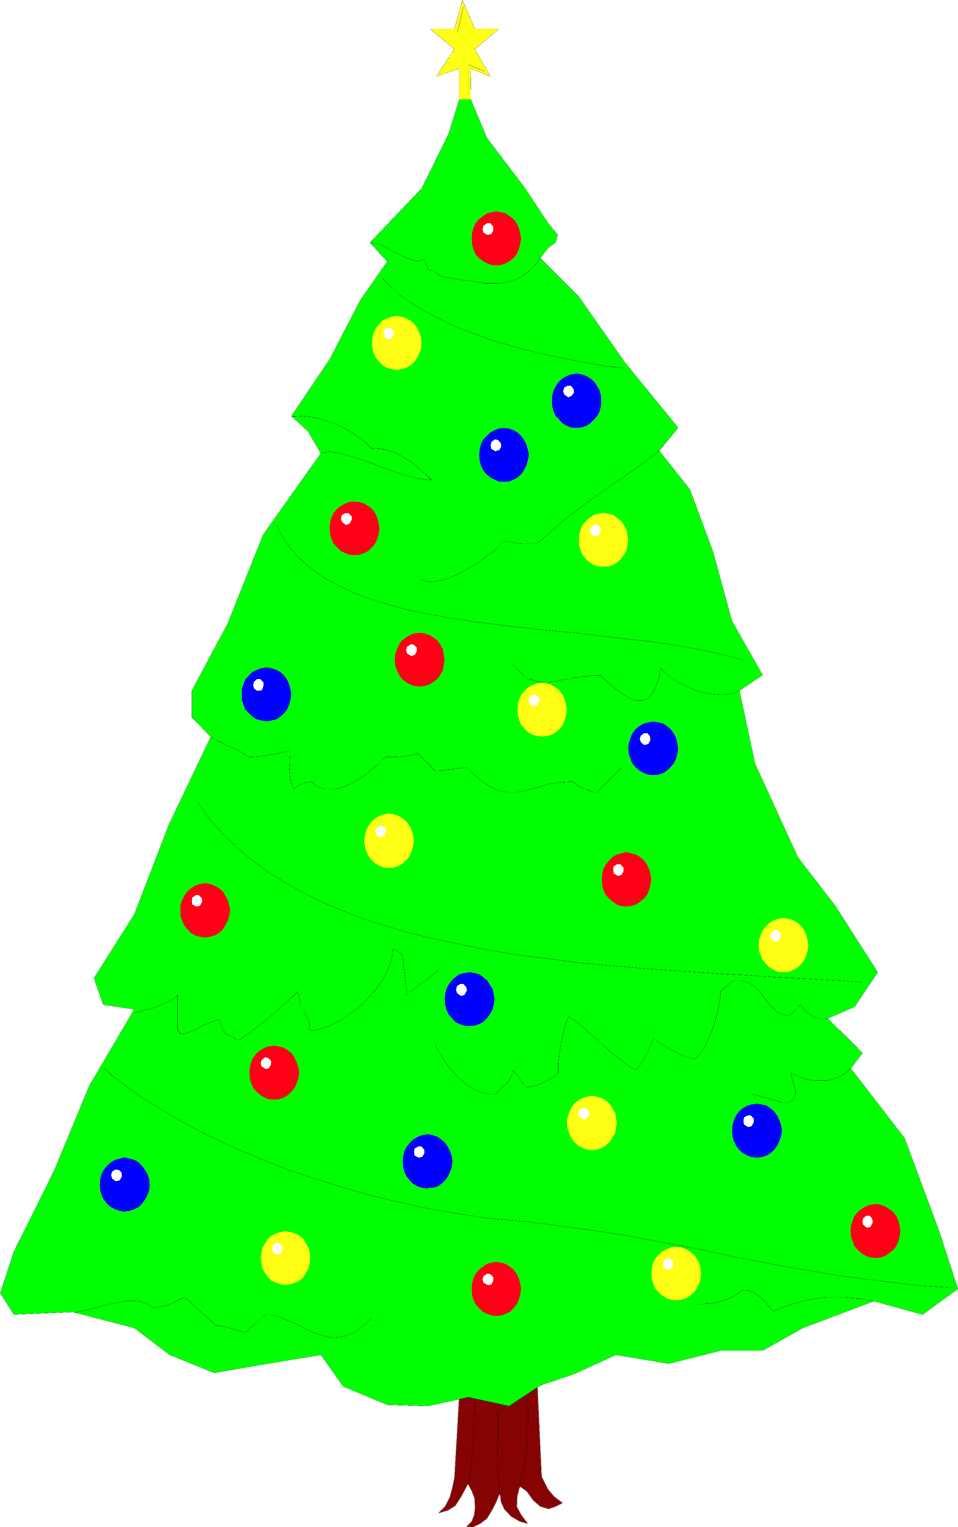 Illustration of a Christmas Tree : Free Stock Photo